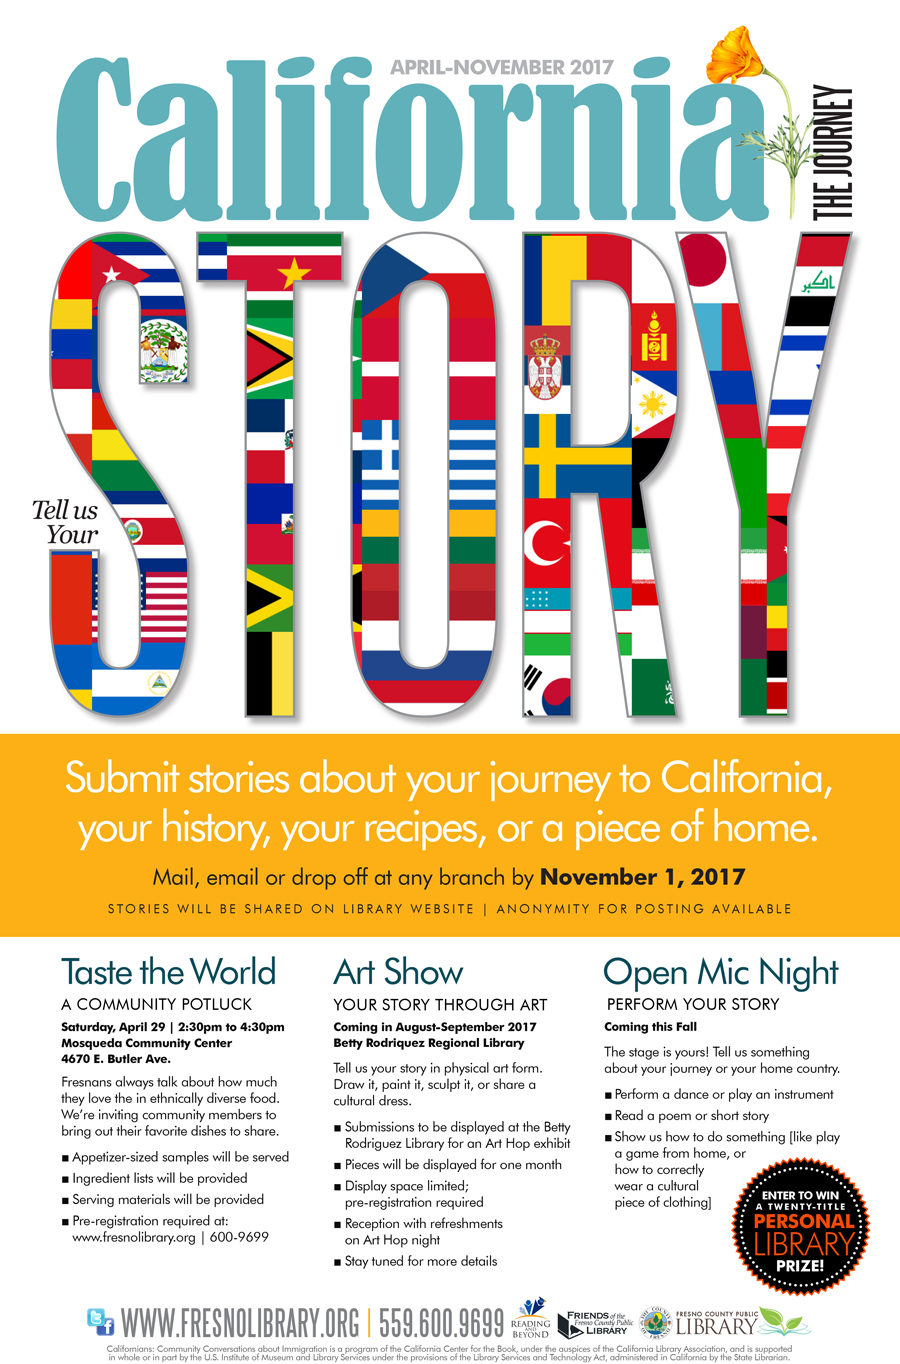 Tell-Us-Your-Story-Calif-Journey-Poster